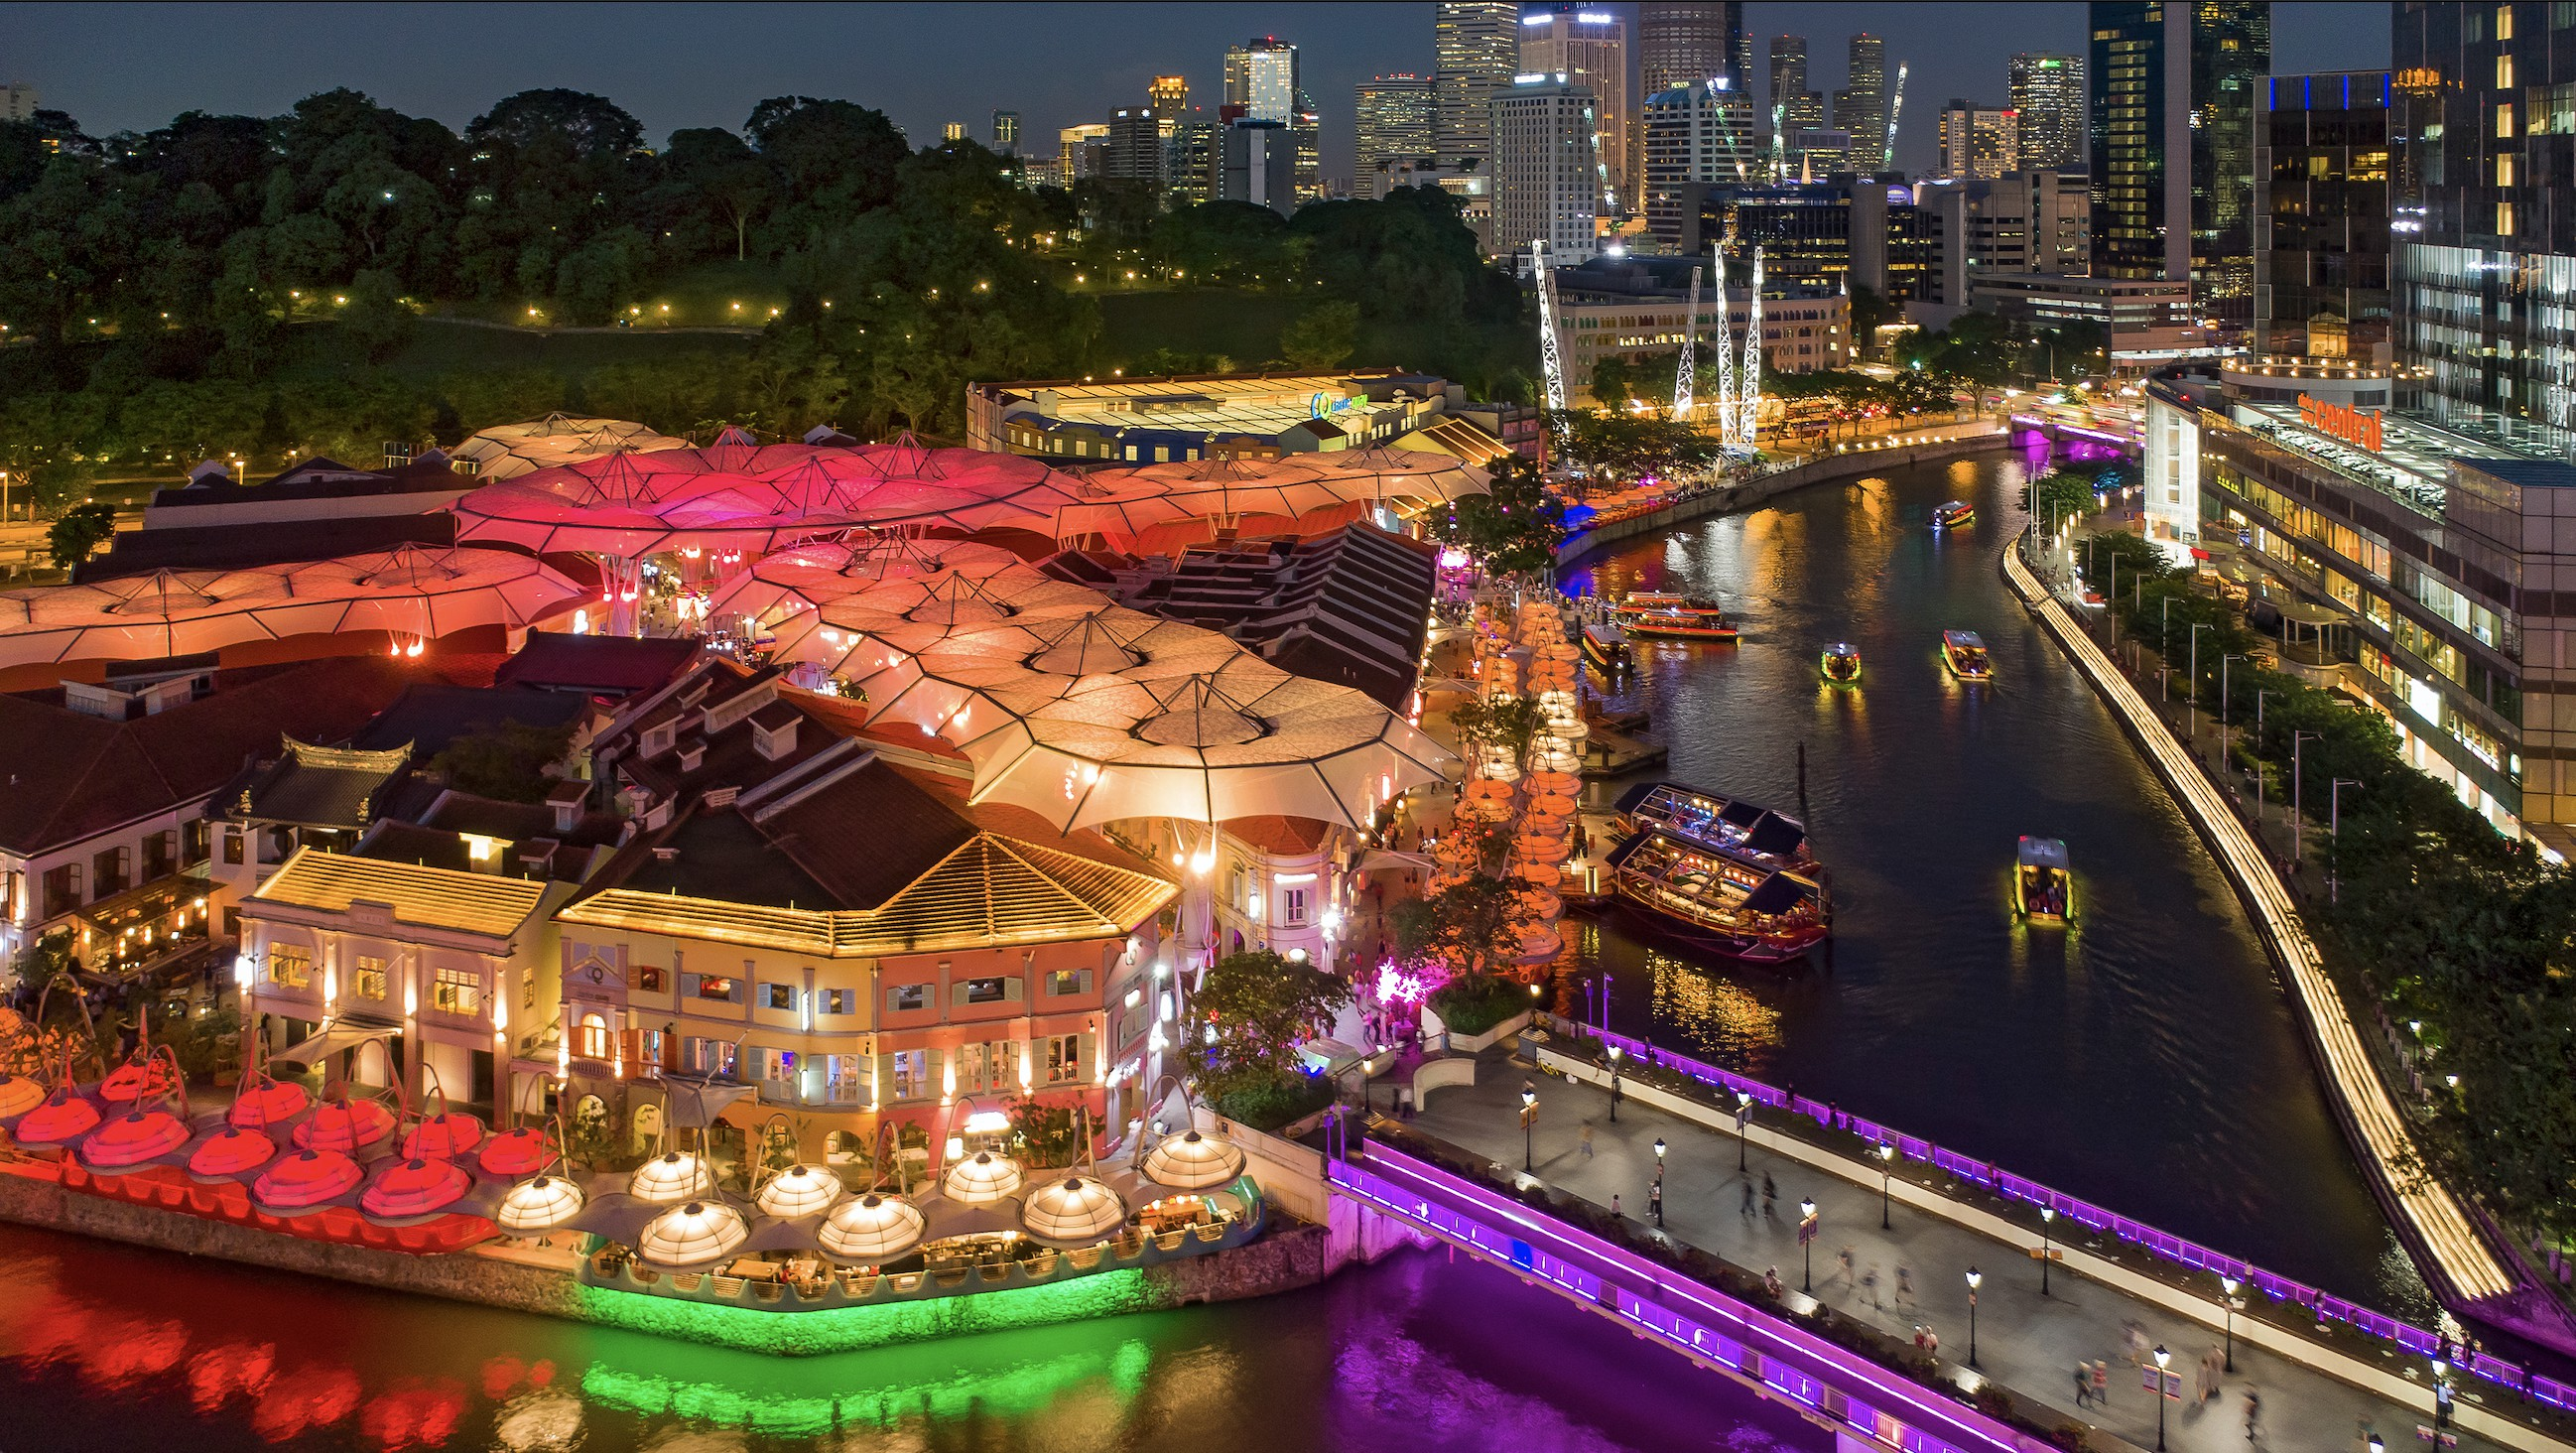 Nighttime aerial image of Clarke Quay, with lights, Singapore River, Fort Canning and civic district in the background. Photo courtesy: Lim Wei Xiang/STB